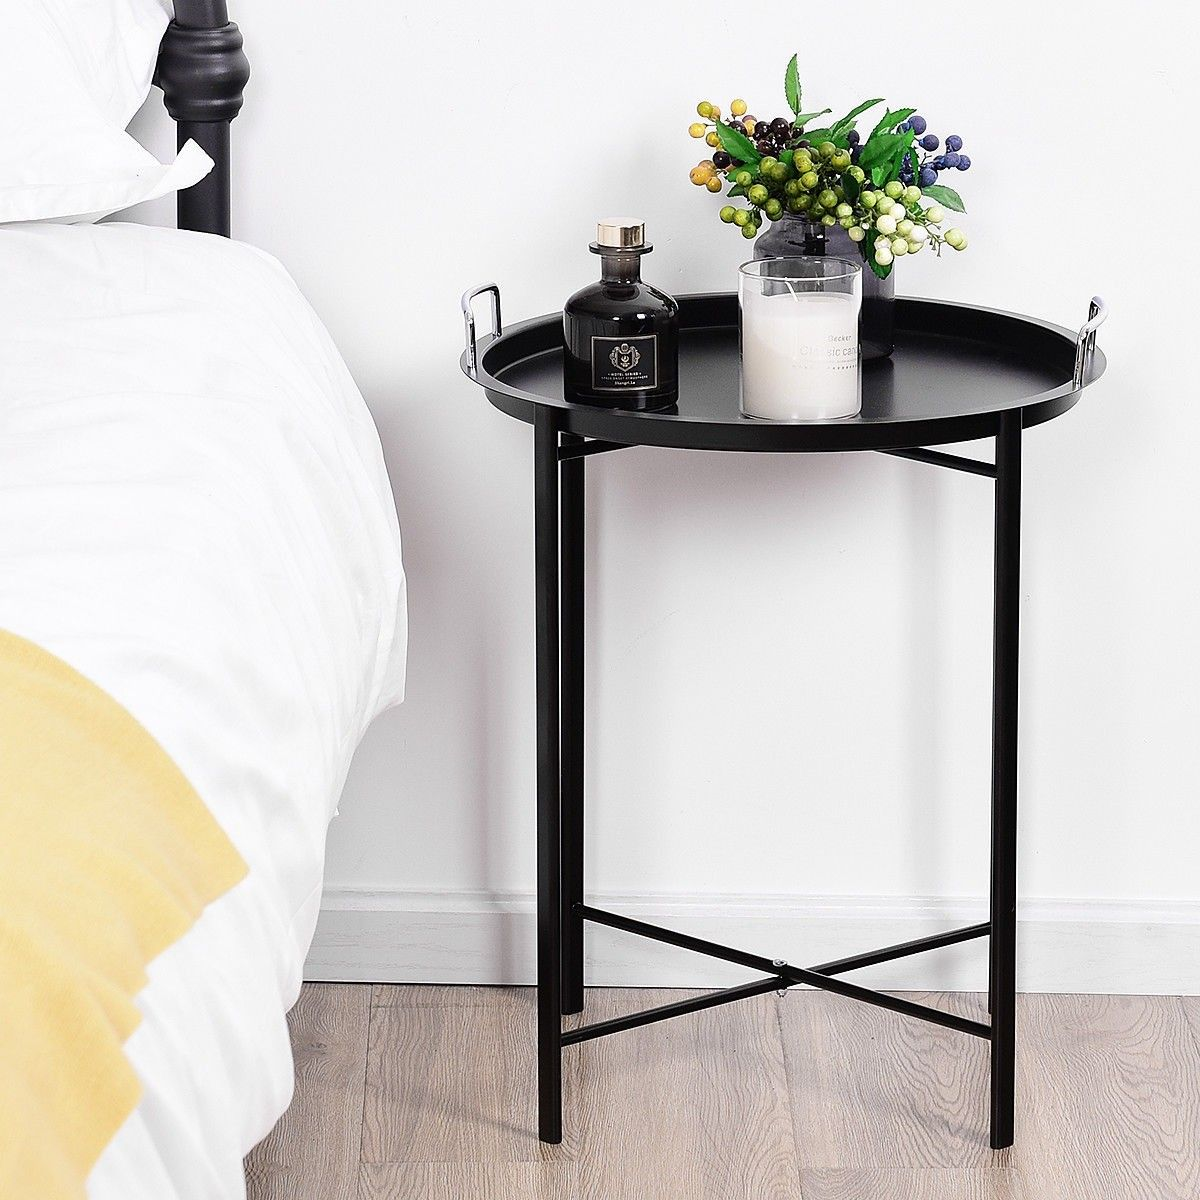 Round Metal Tray Side Living Room End Table Round Metal Table Living Room End Tables Round Metal Side Table